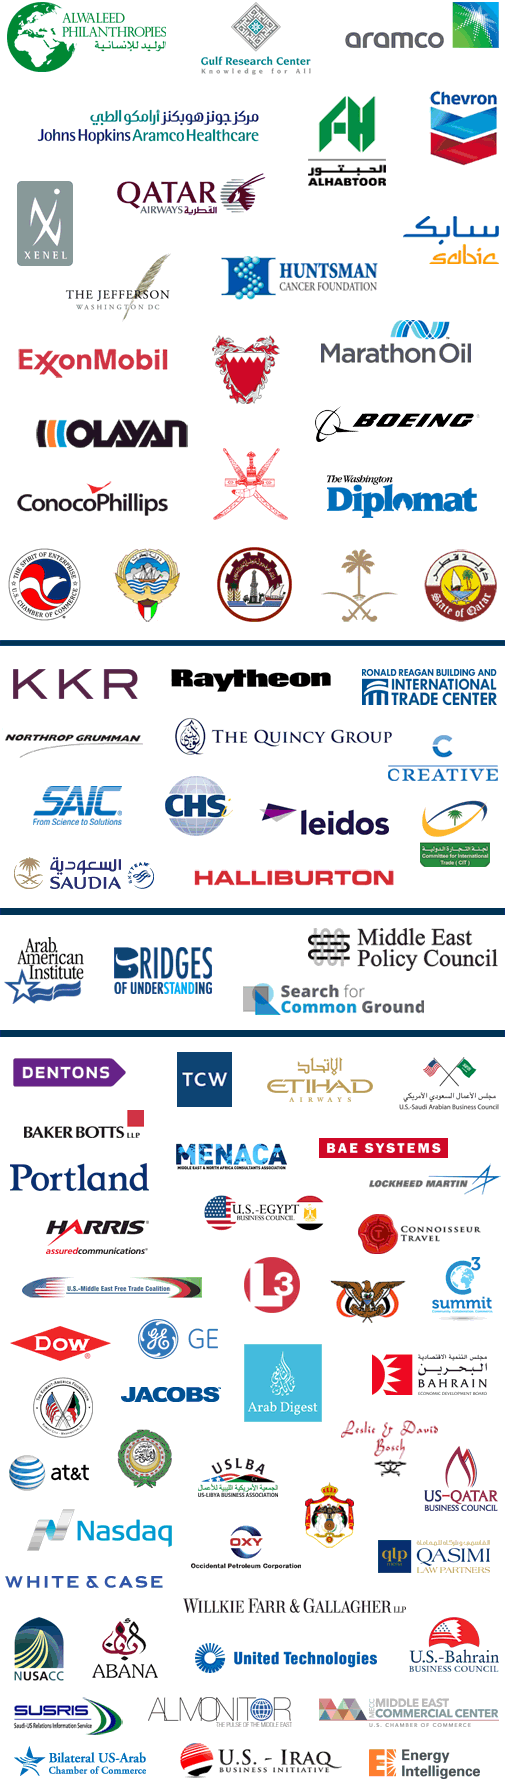 2015 Arab-U.S. Policymakers Conference Sponsors